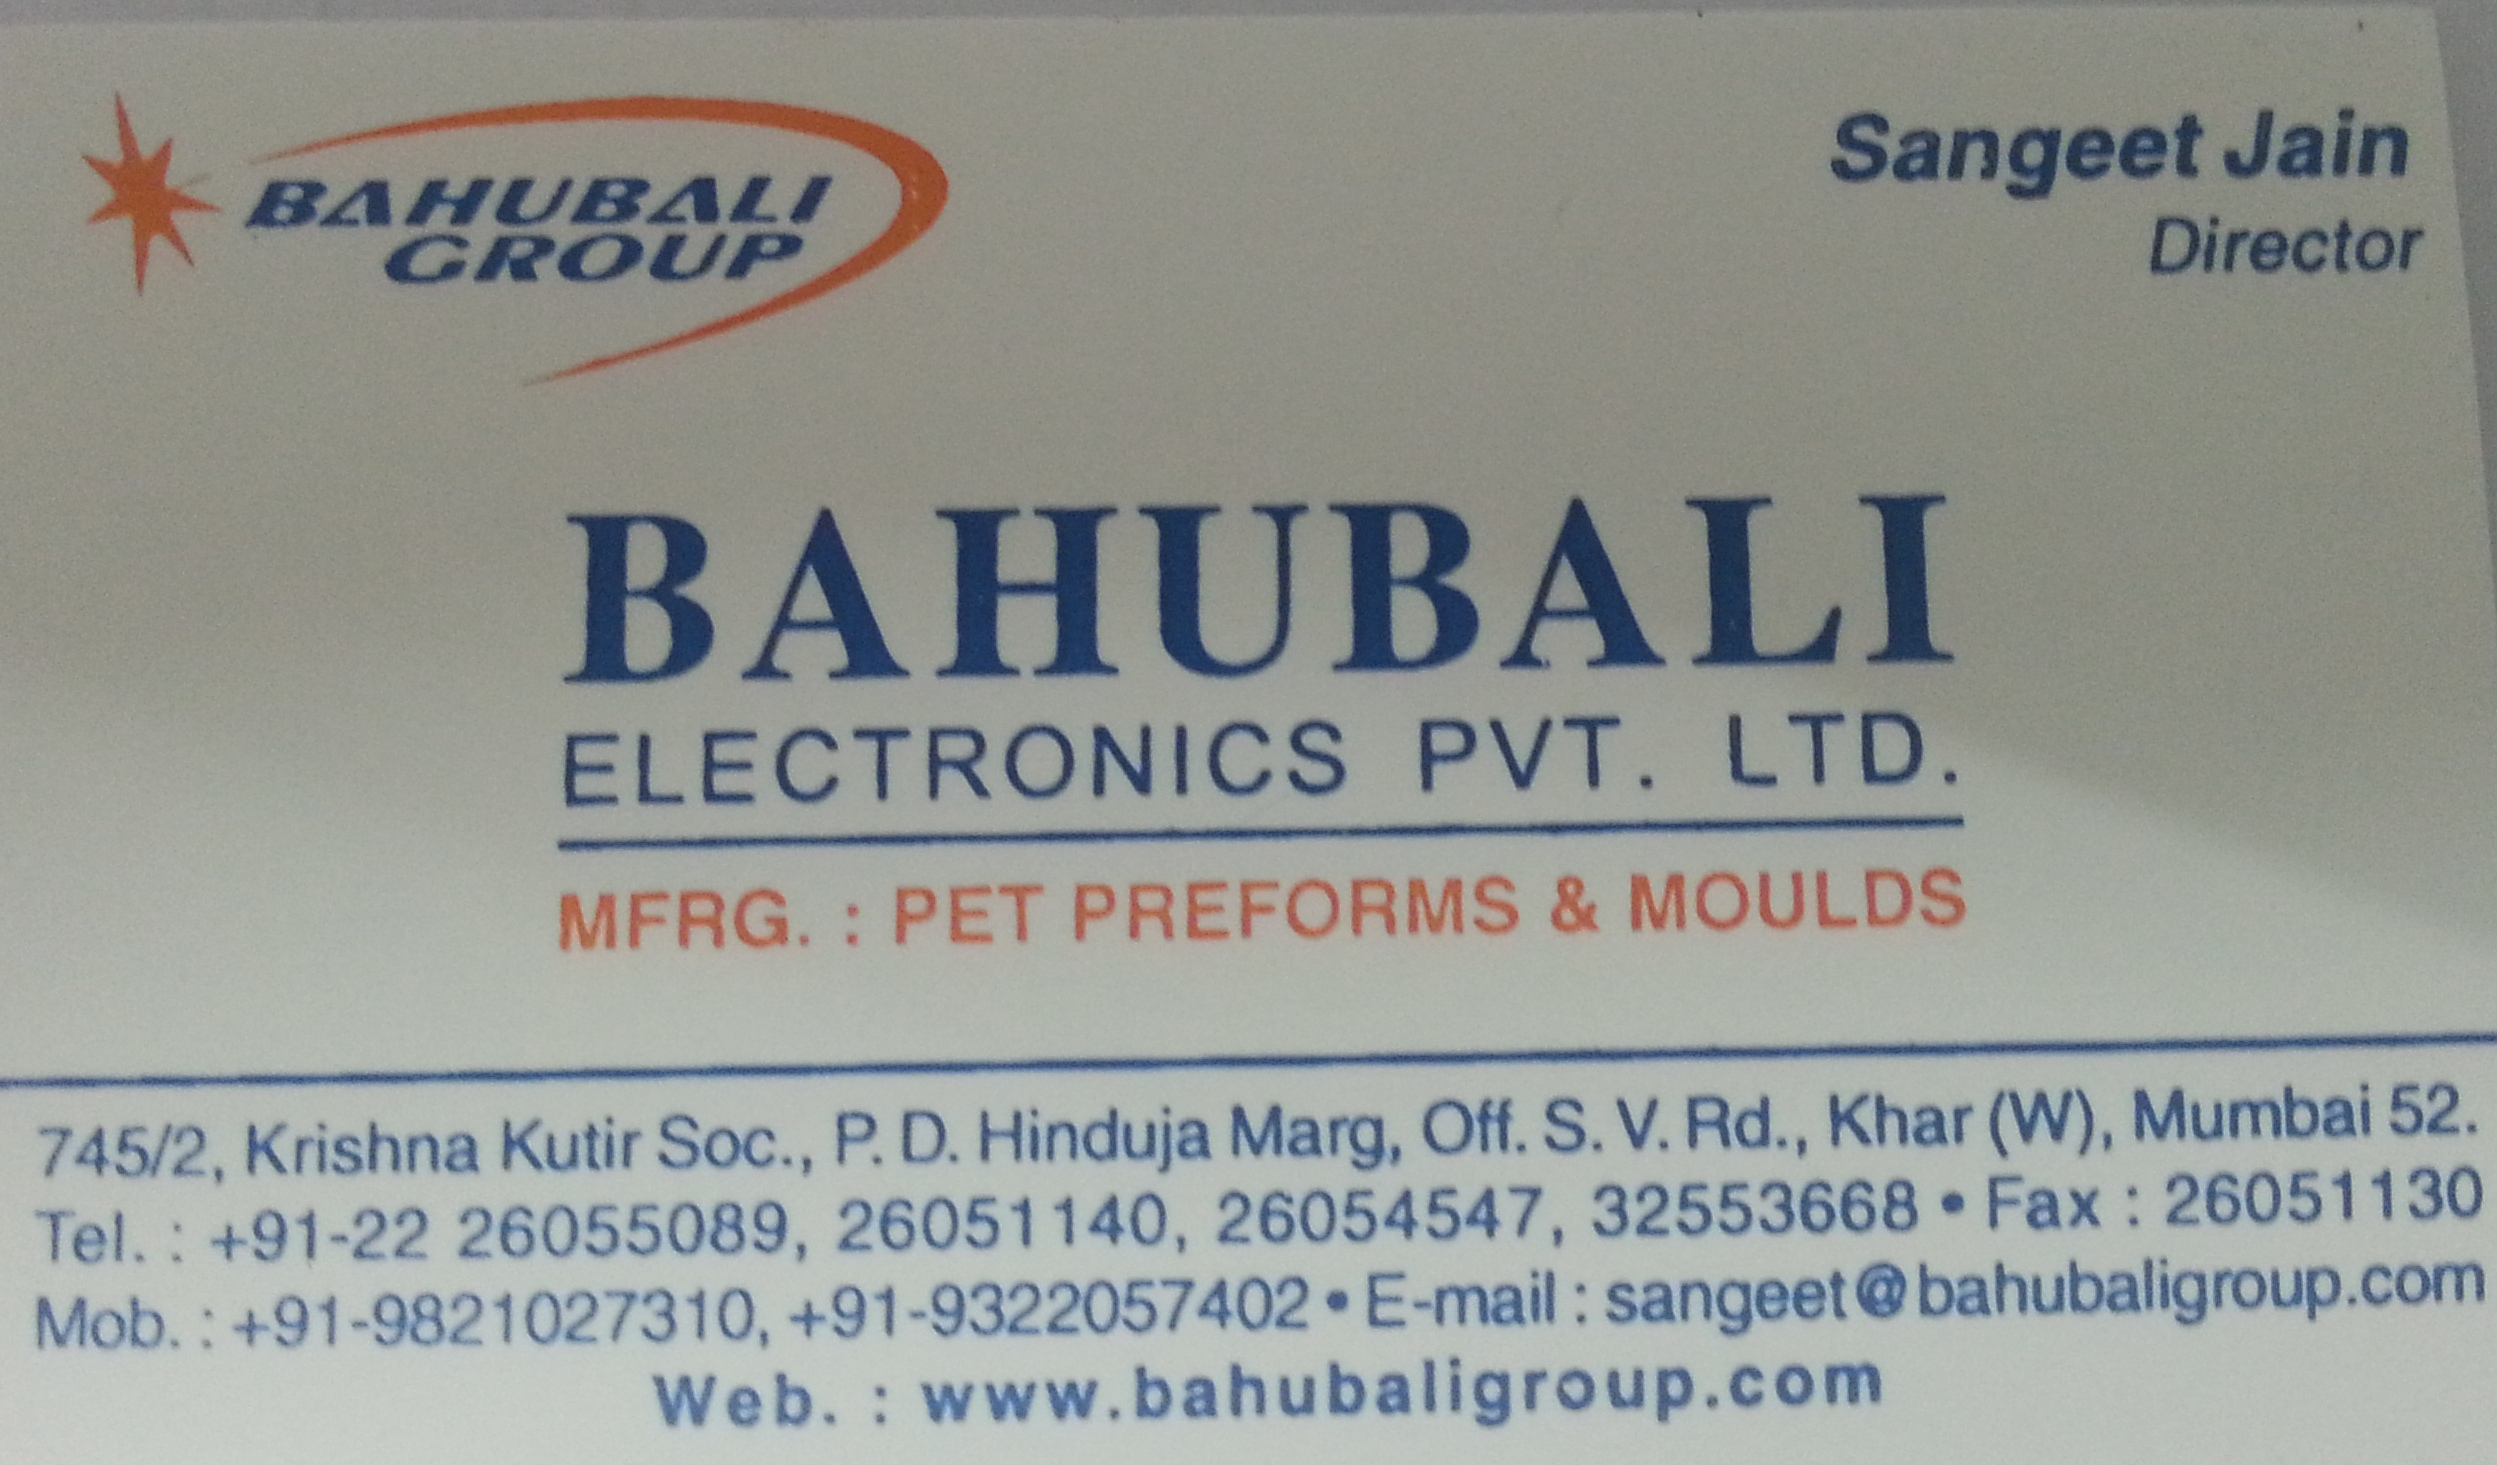 Bahubali Group